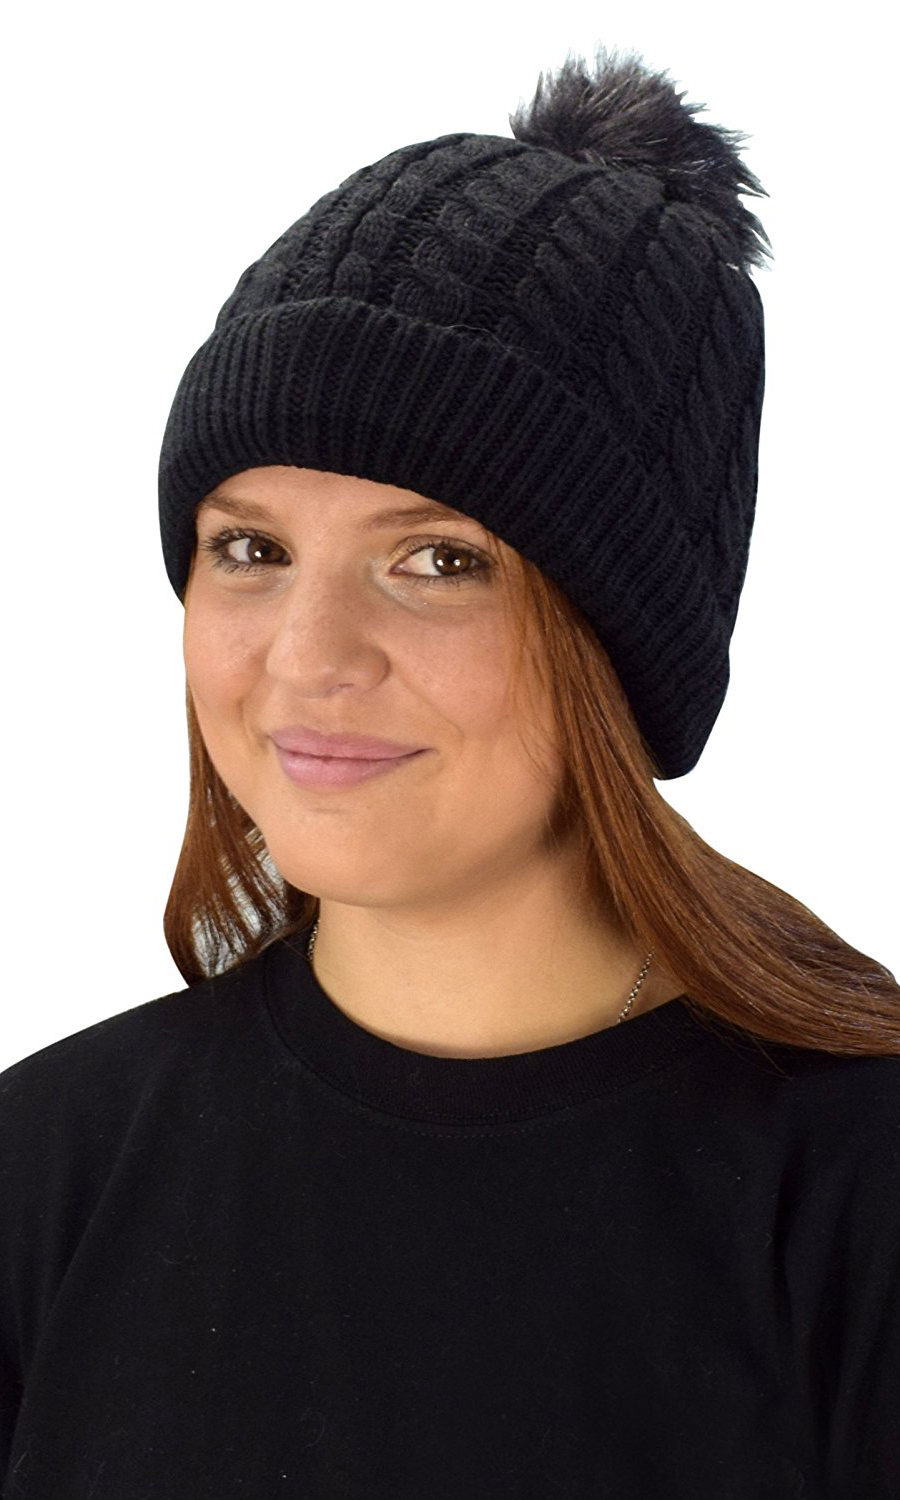 0281271e Black Womens Warm Hand Knit Pom Thick Sherpa Lined Winter Ski Snowboard Hat  - Limit one